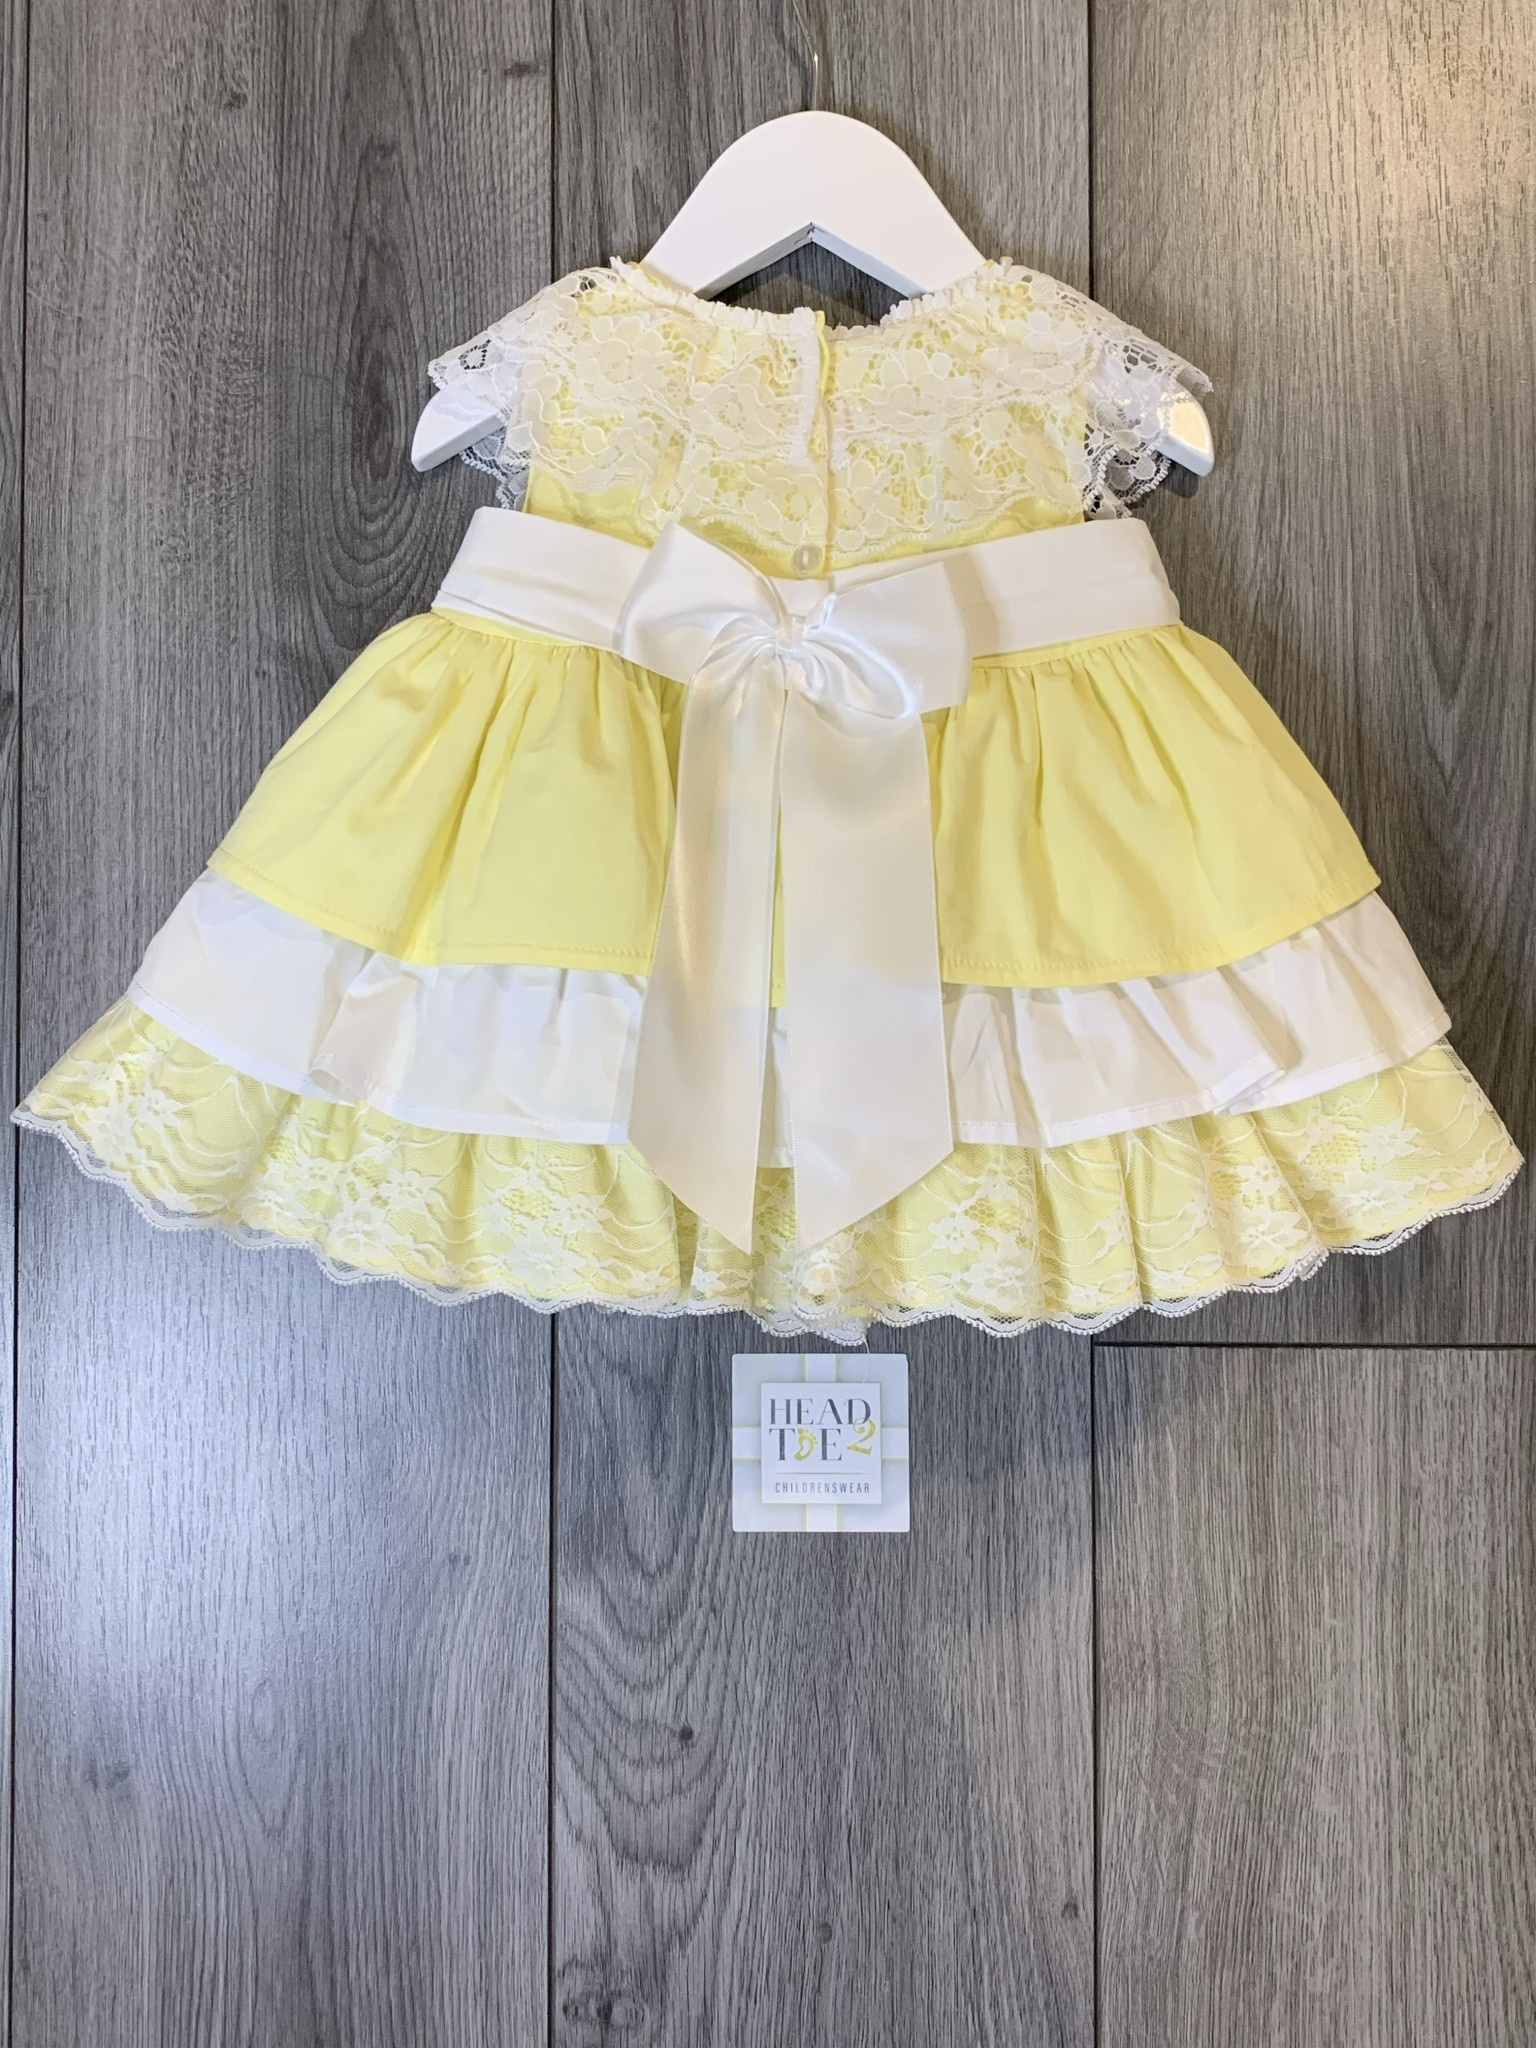 Spanish Lemon and white puff dress with bow frill detail 2013